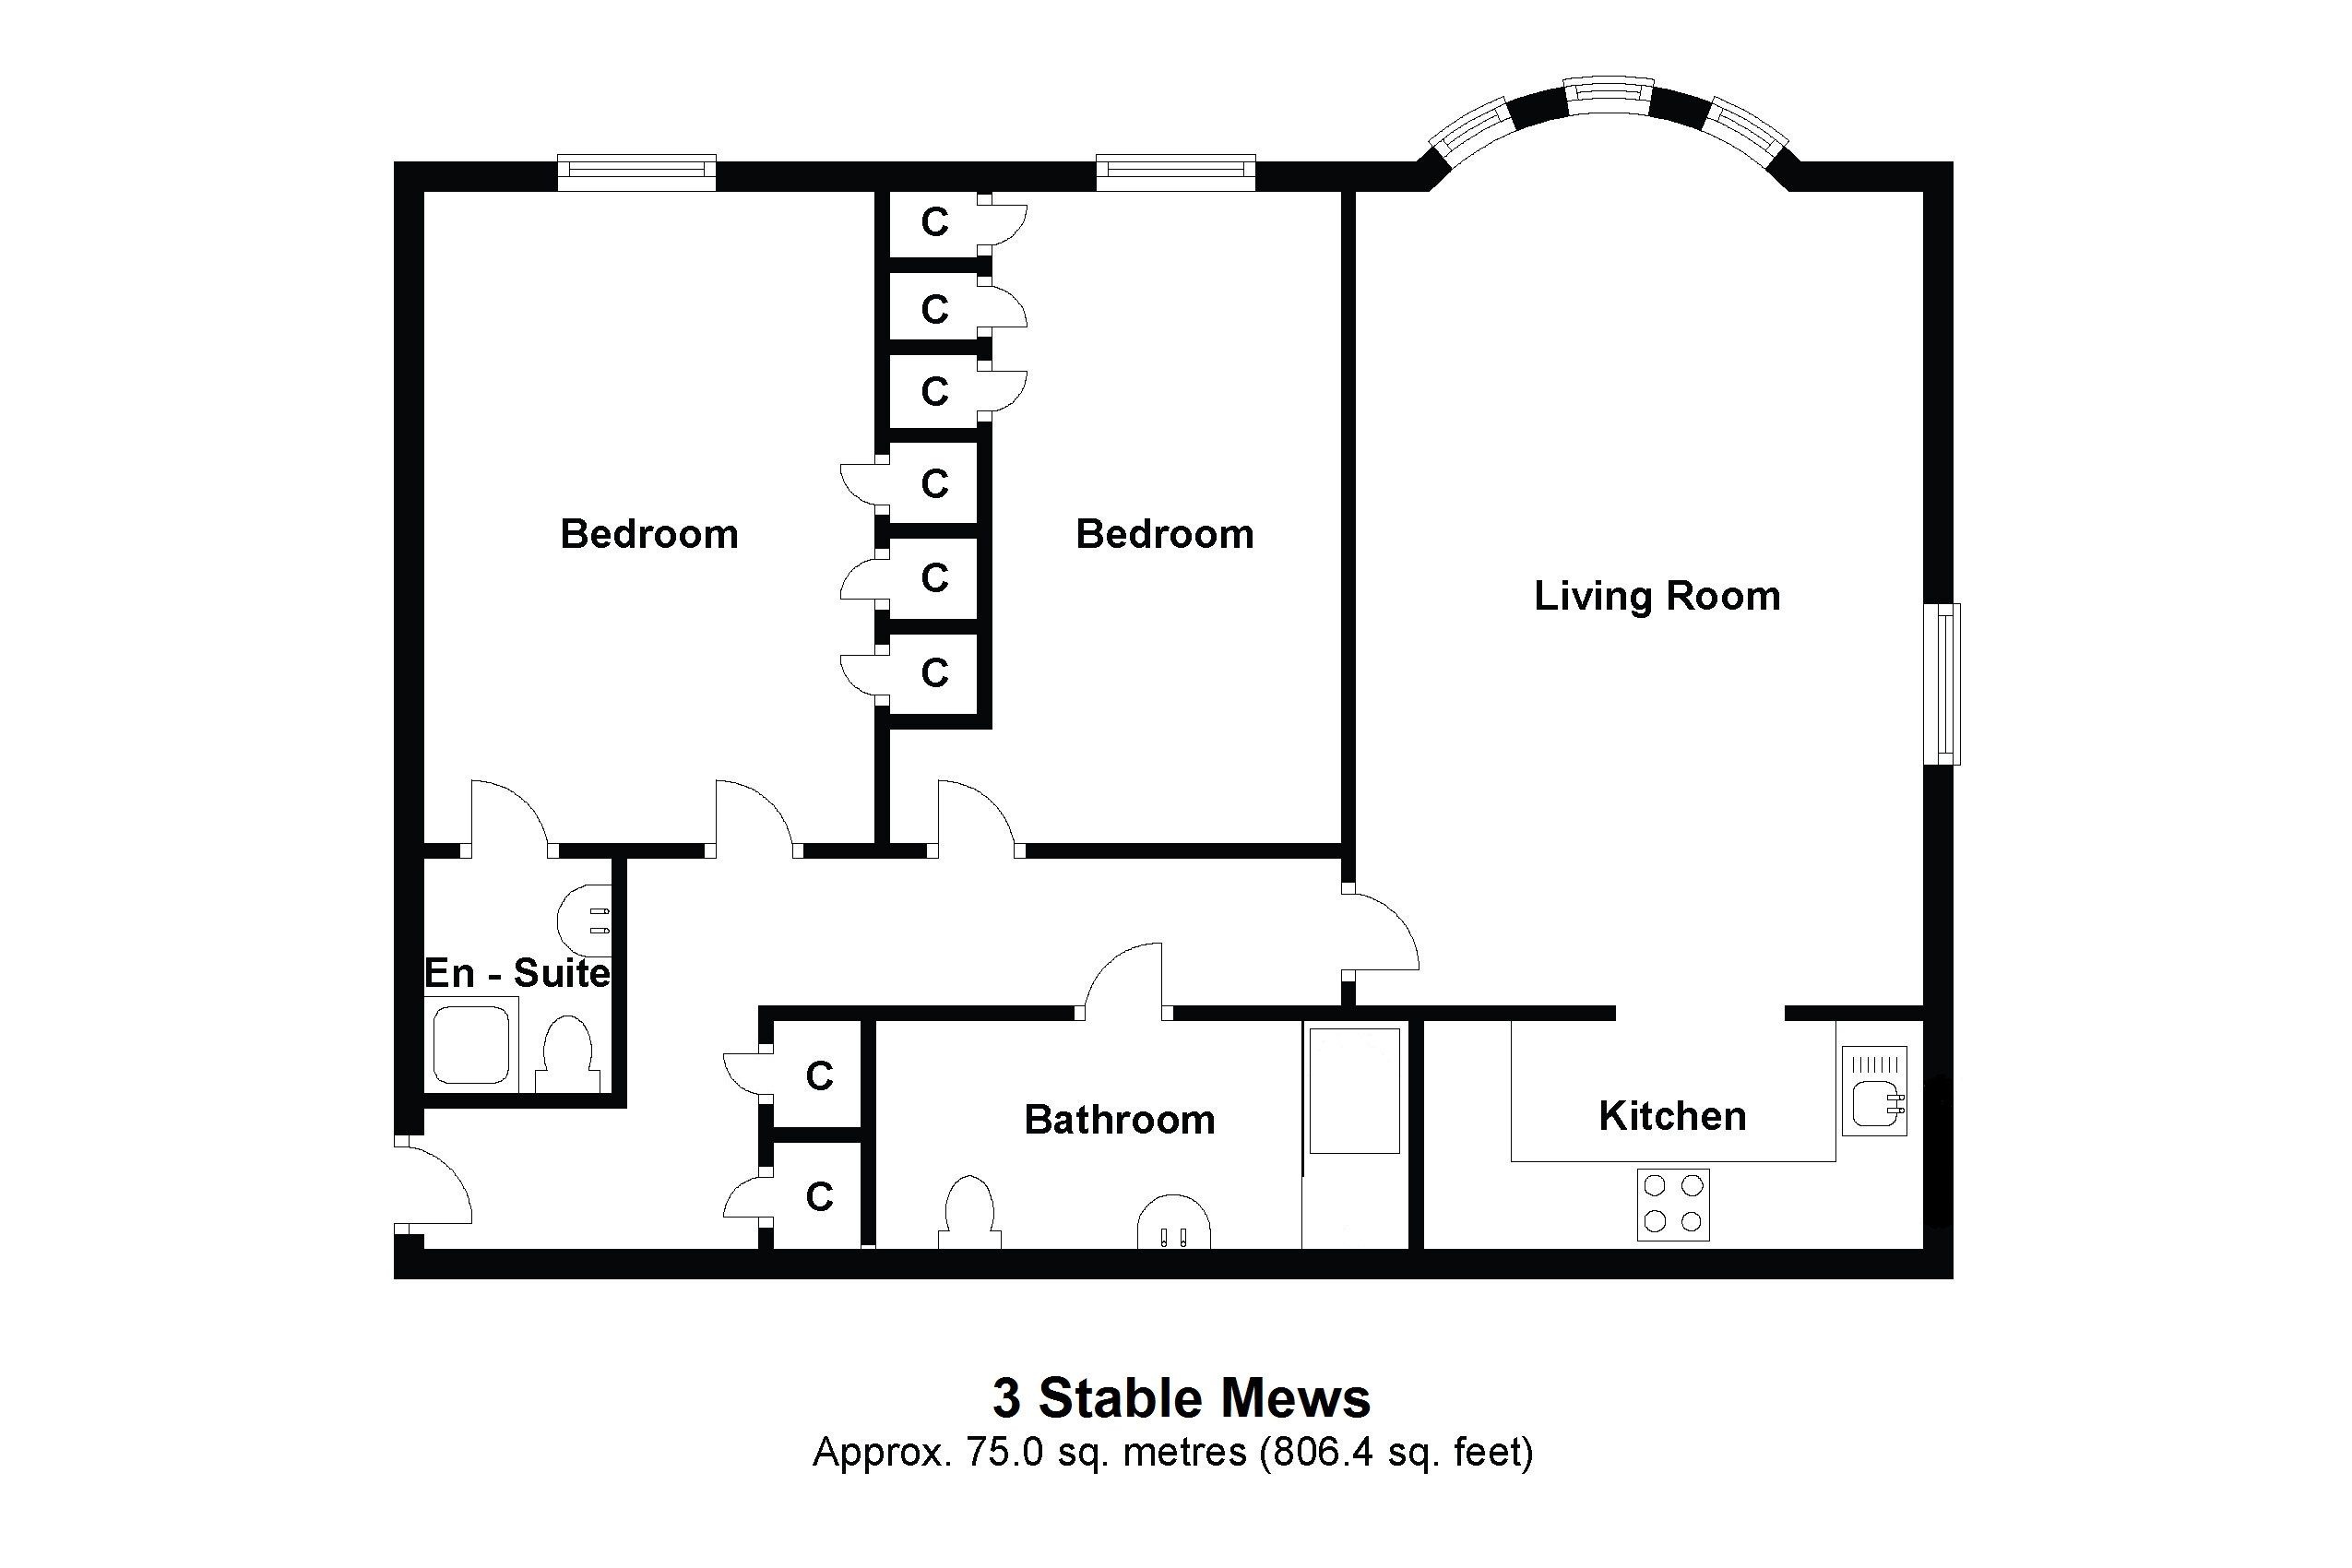 3 Stable Mews Floorplan